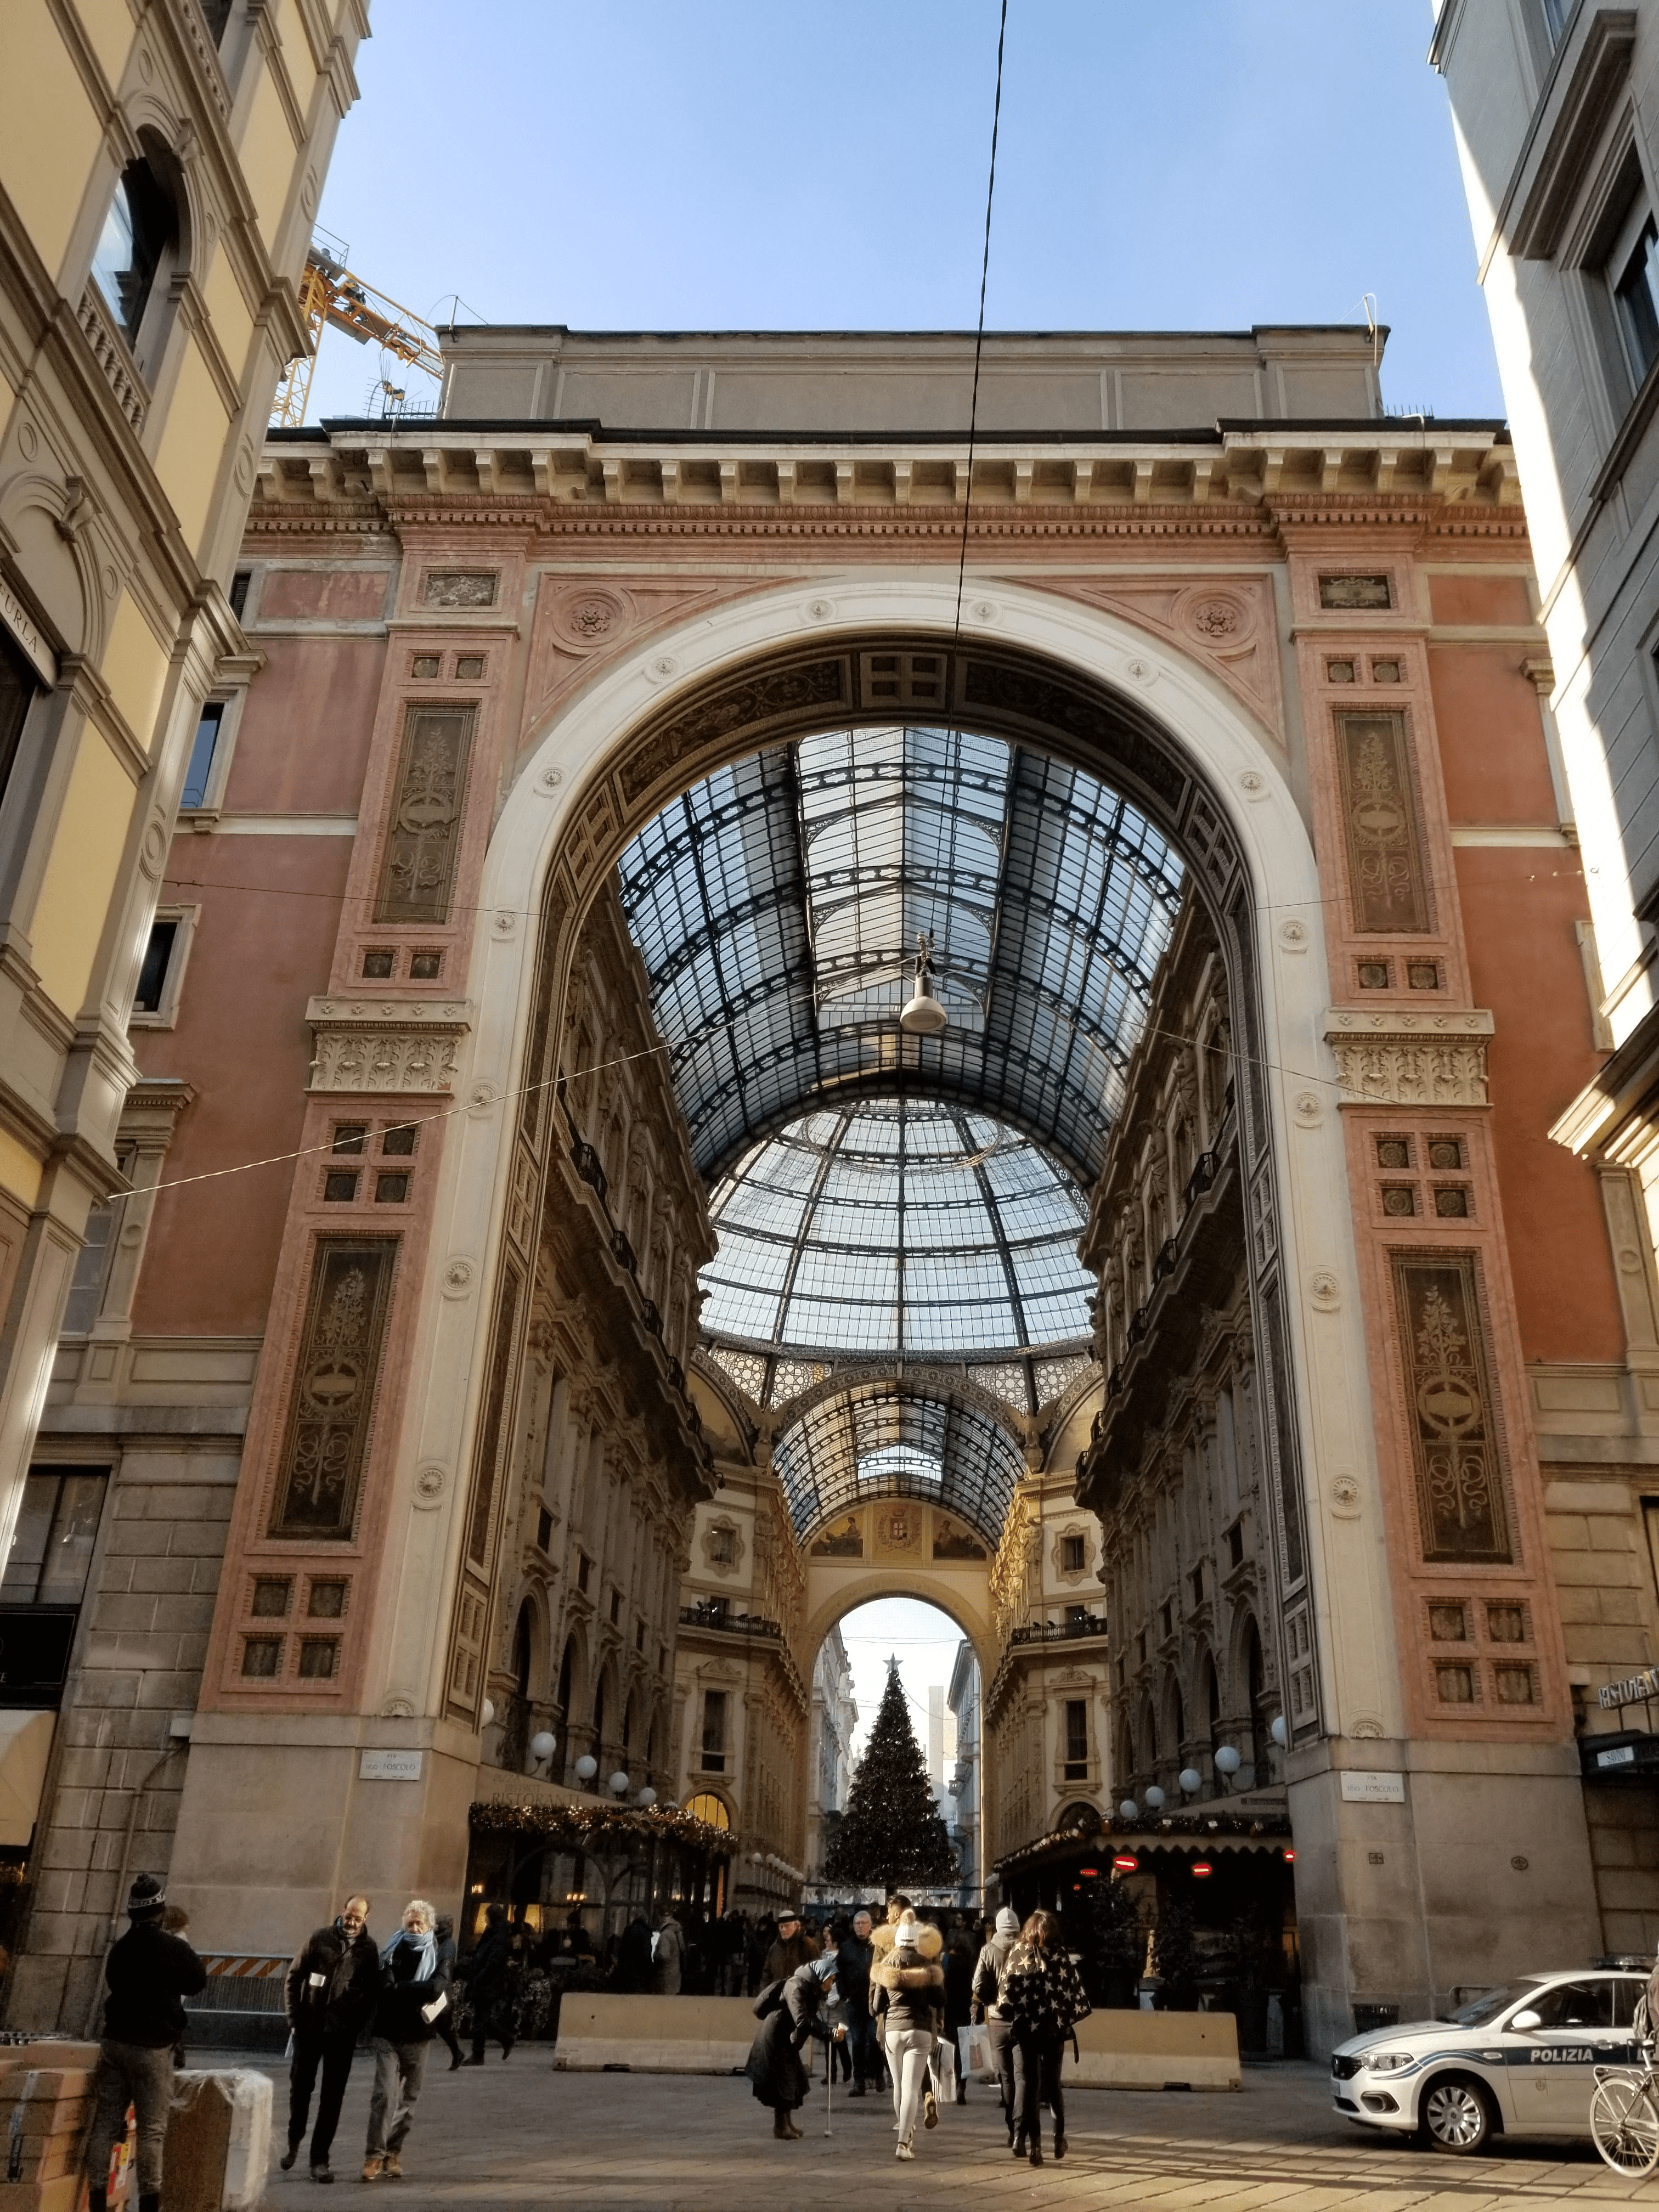 Inside the Galleria Vittorio Emanuele II in Milan, Italy